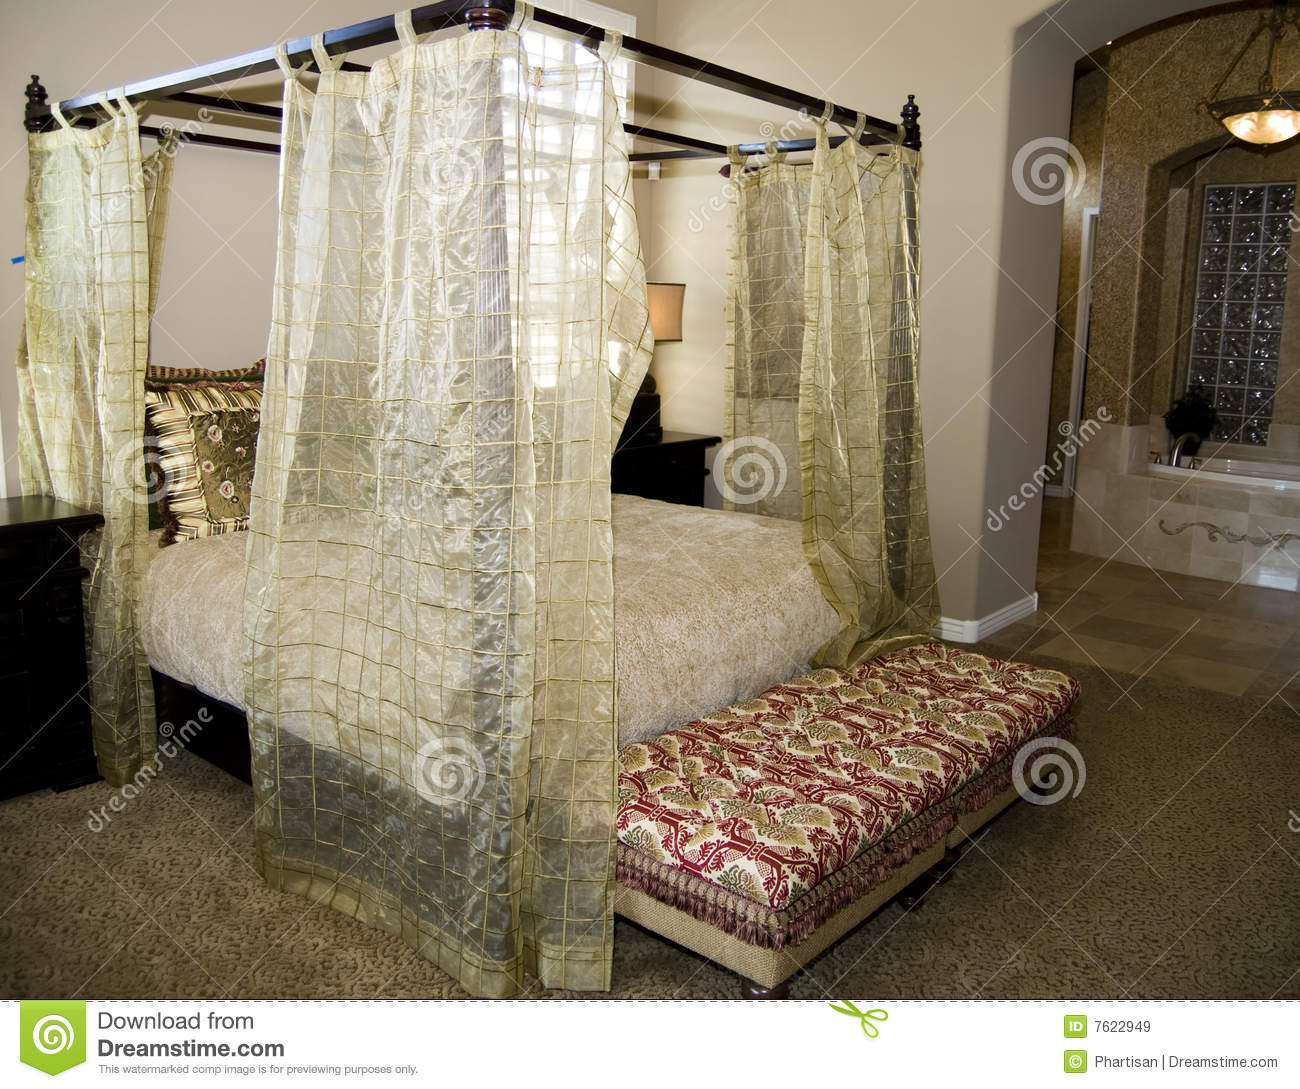 Download Asian Inspired Bedroom Stock Image. Image Of Life, Design   7622949